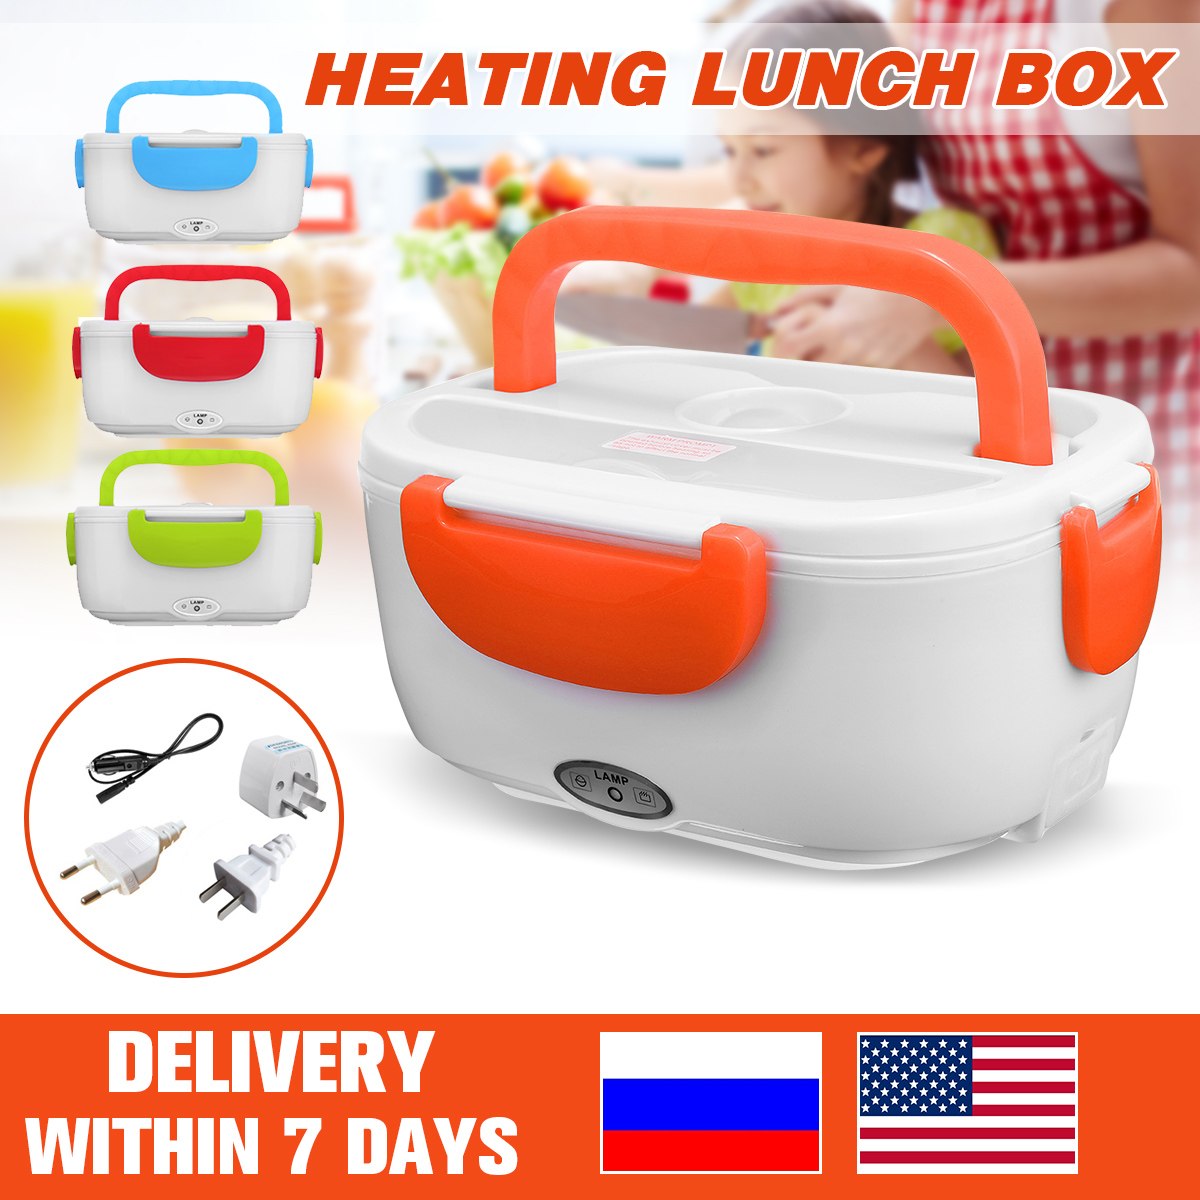 12/110/220V Portable Electric Heating Lunch Box Bento Storage Box Home Office School Rice Container Food Warmer for Dropshipping